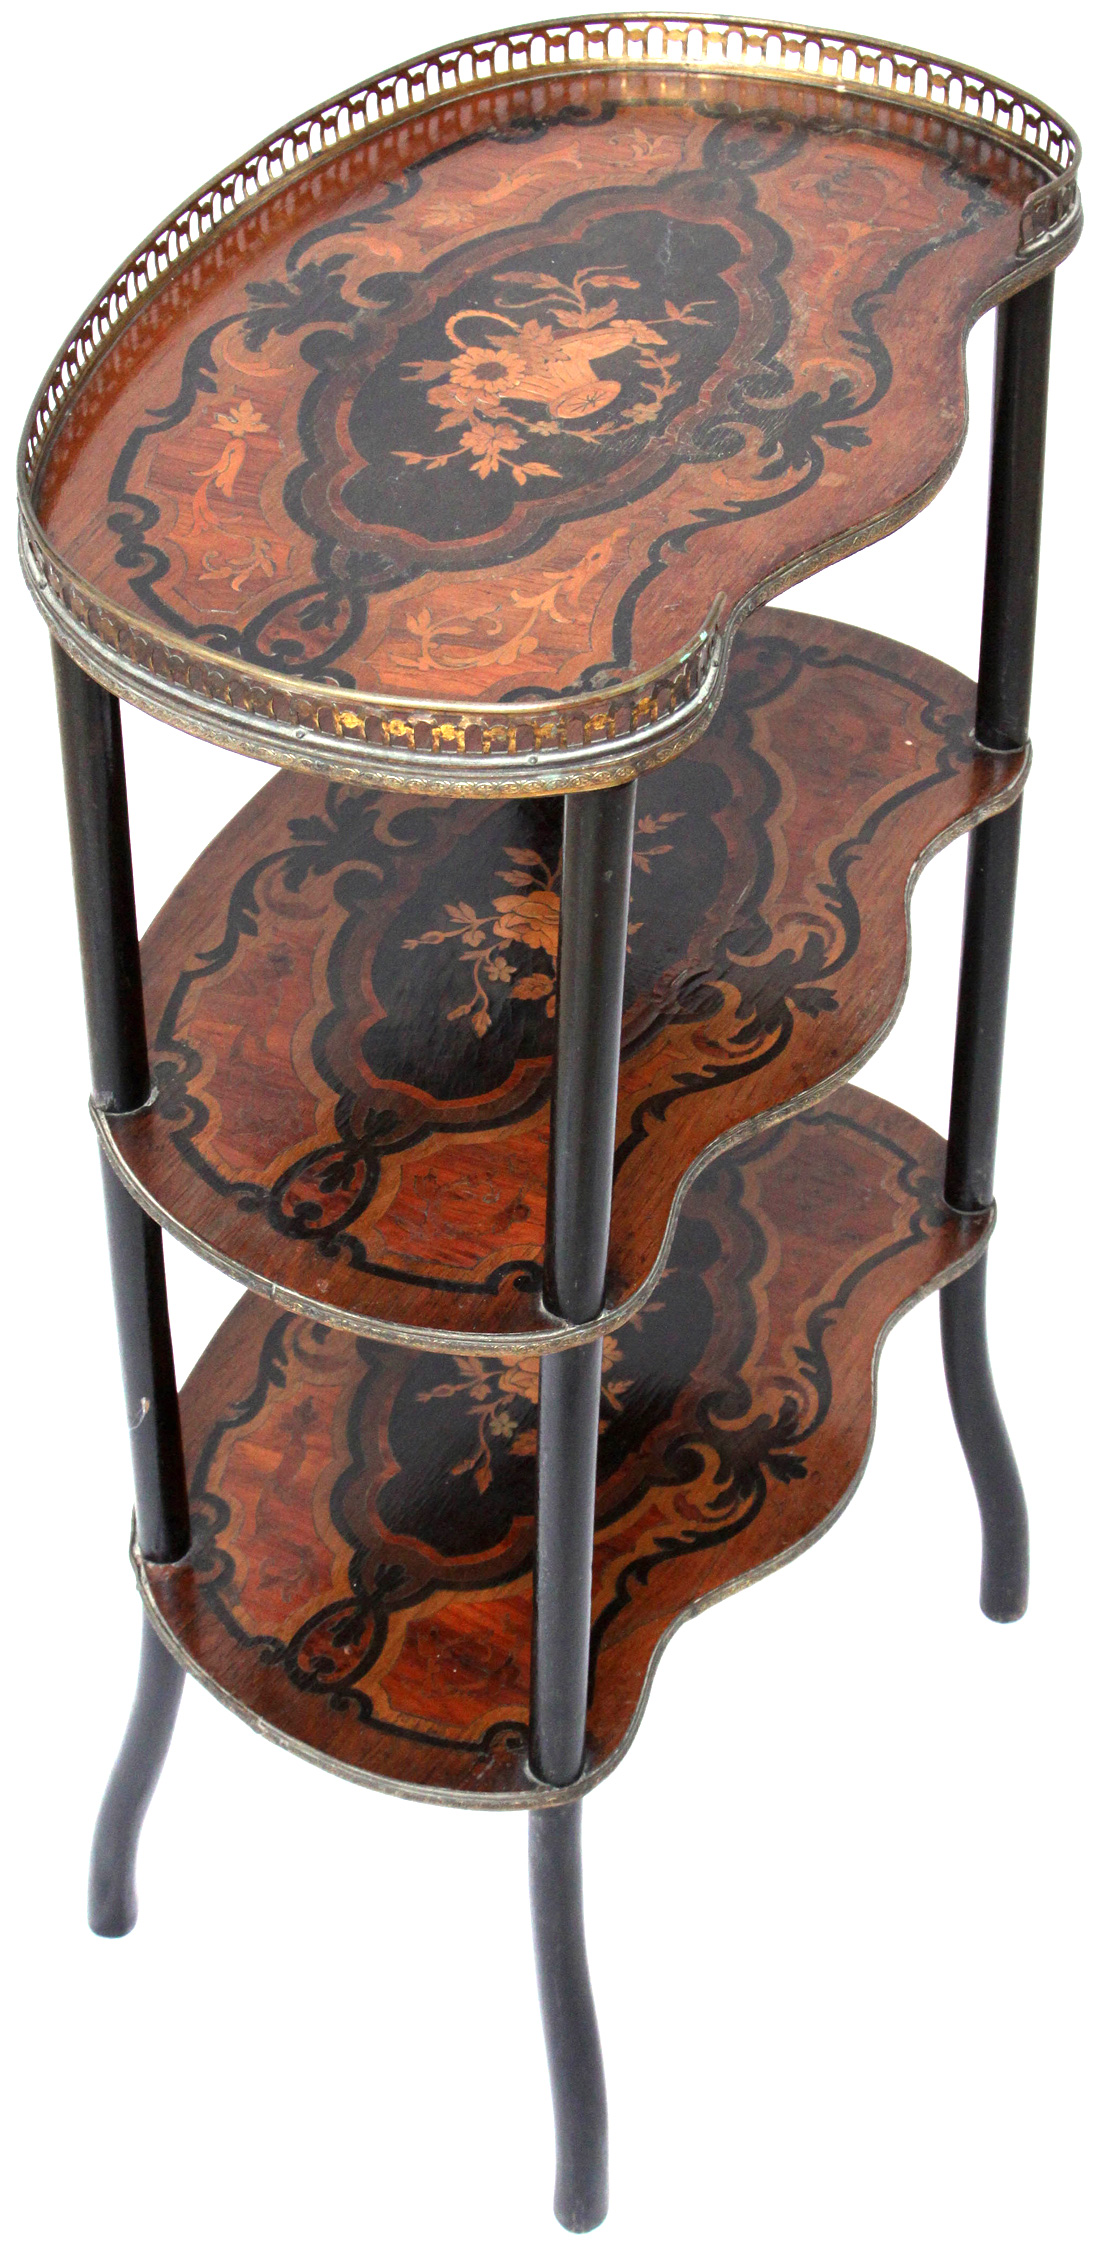 Antique Victorian What-not Etagere with Marquetry Shelves - כוננית מדפים  ויקטוריאנית - Antique Victorian What-not Etagere With Marquetry Shelves